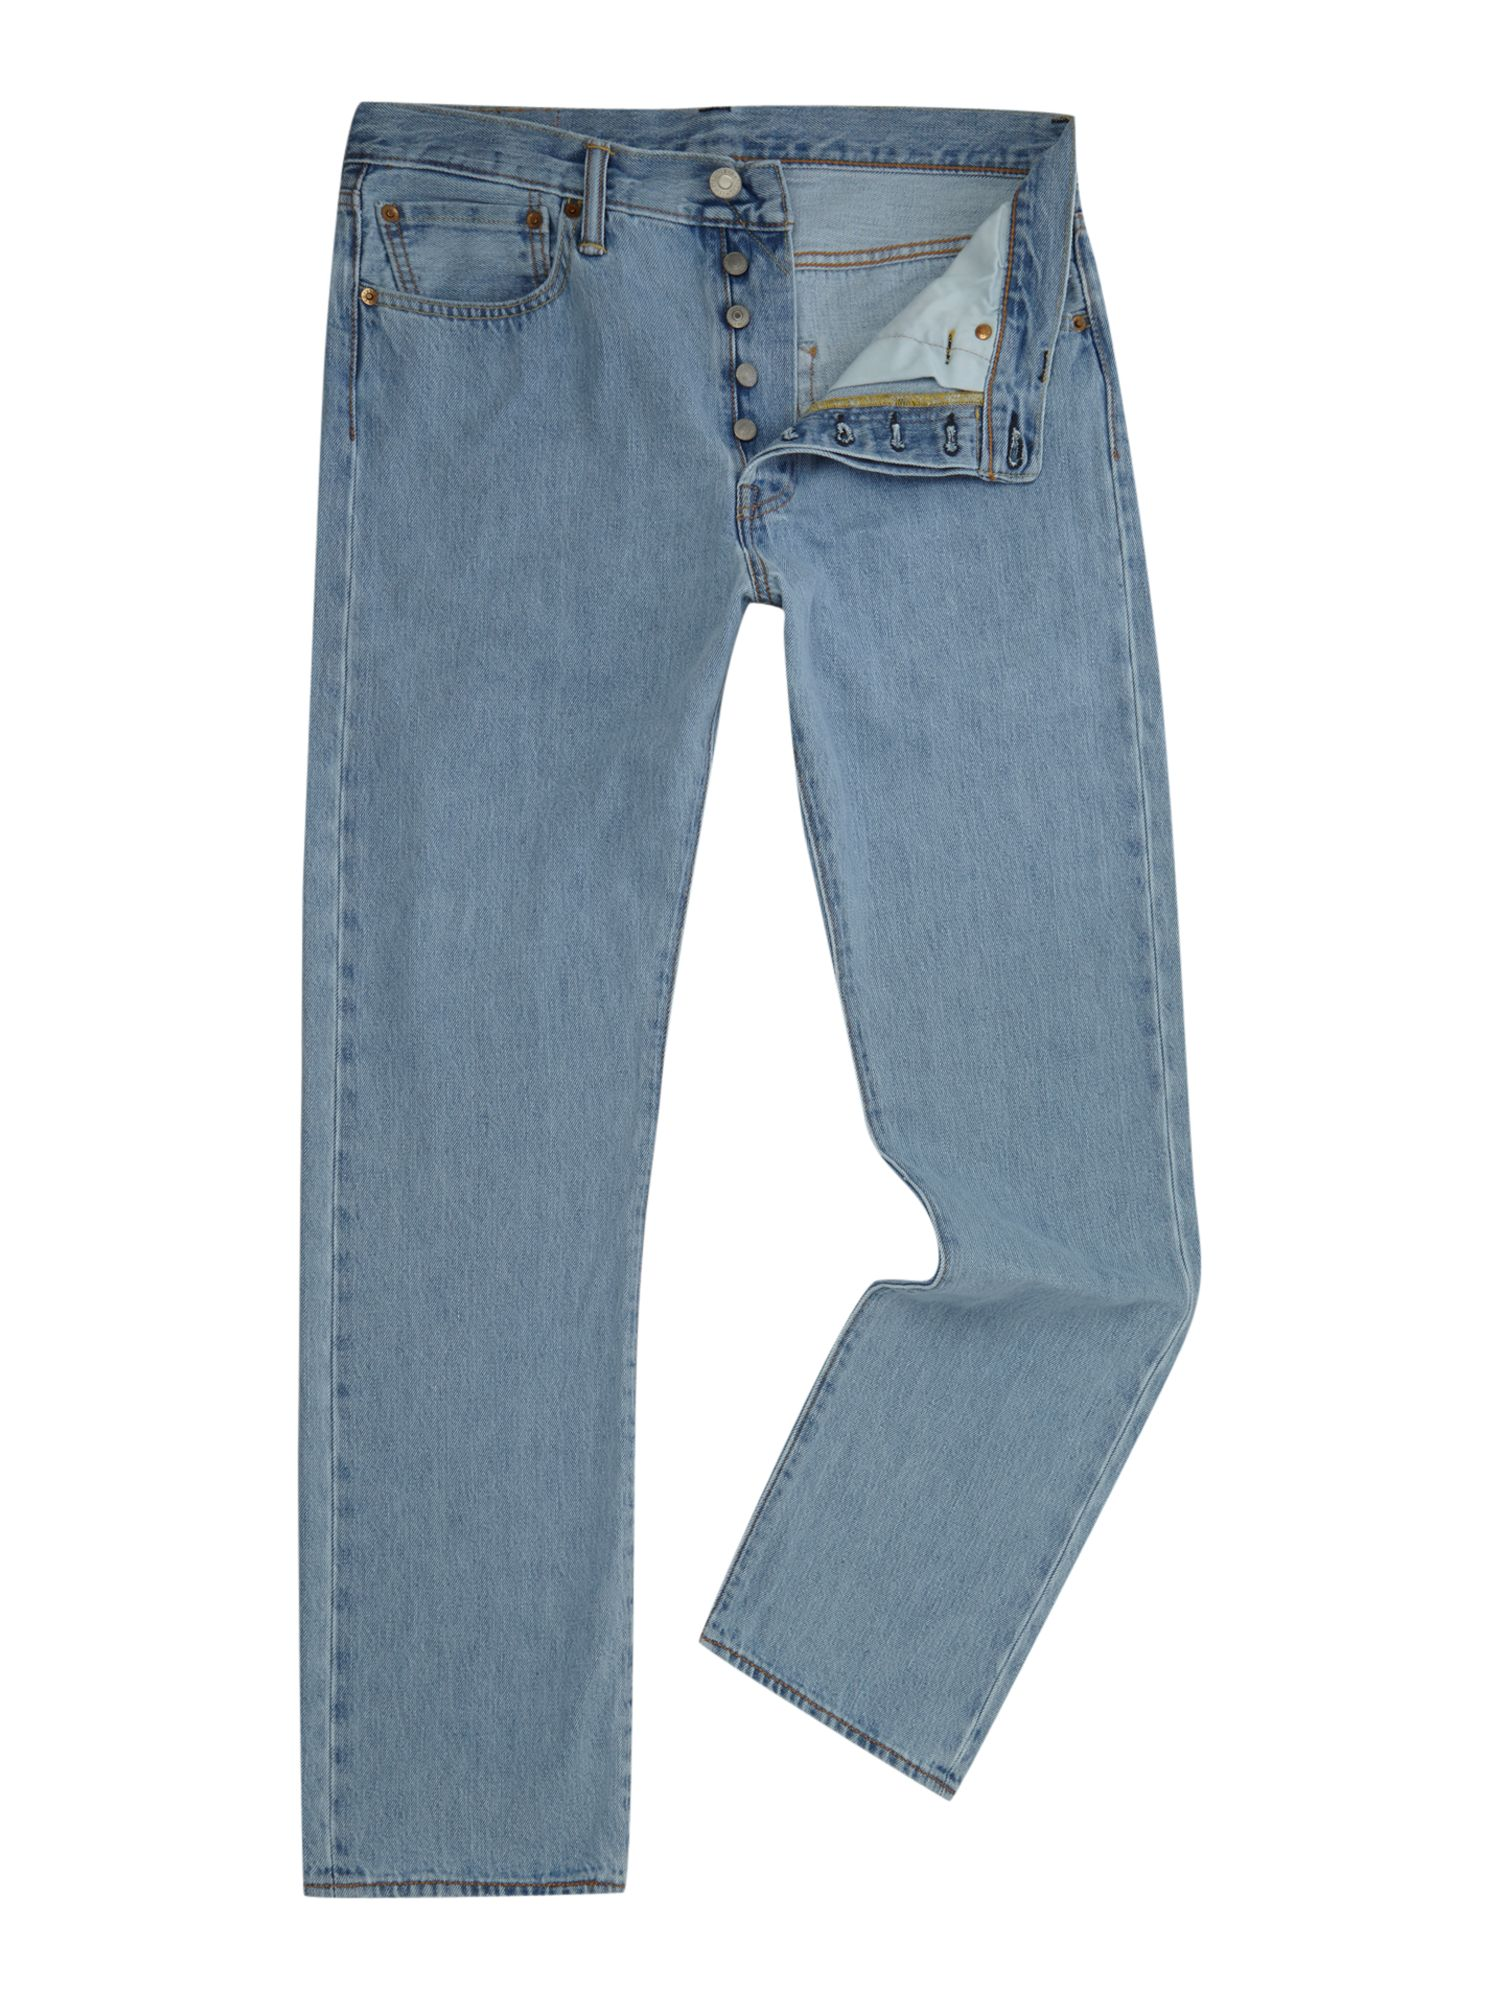 Shop Online for the Latest Collection of Men's Clearance/Closeout Jeans & Clothing by Levi's at buzz24.ga FREE SHIPPING AVAILABLE!